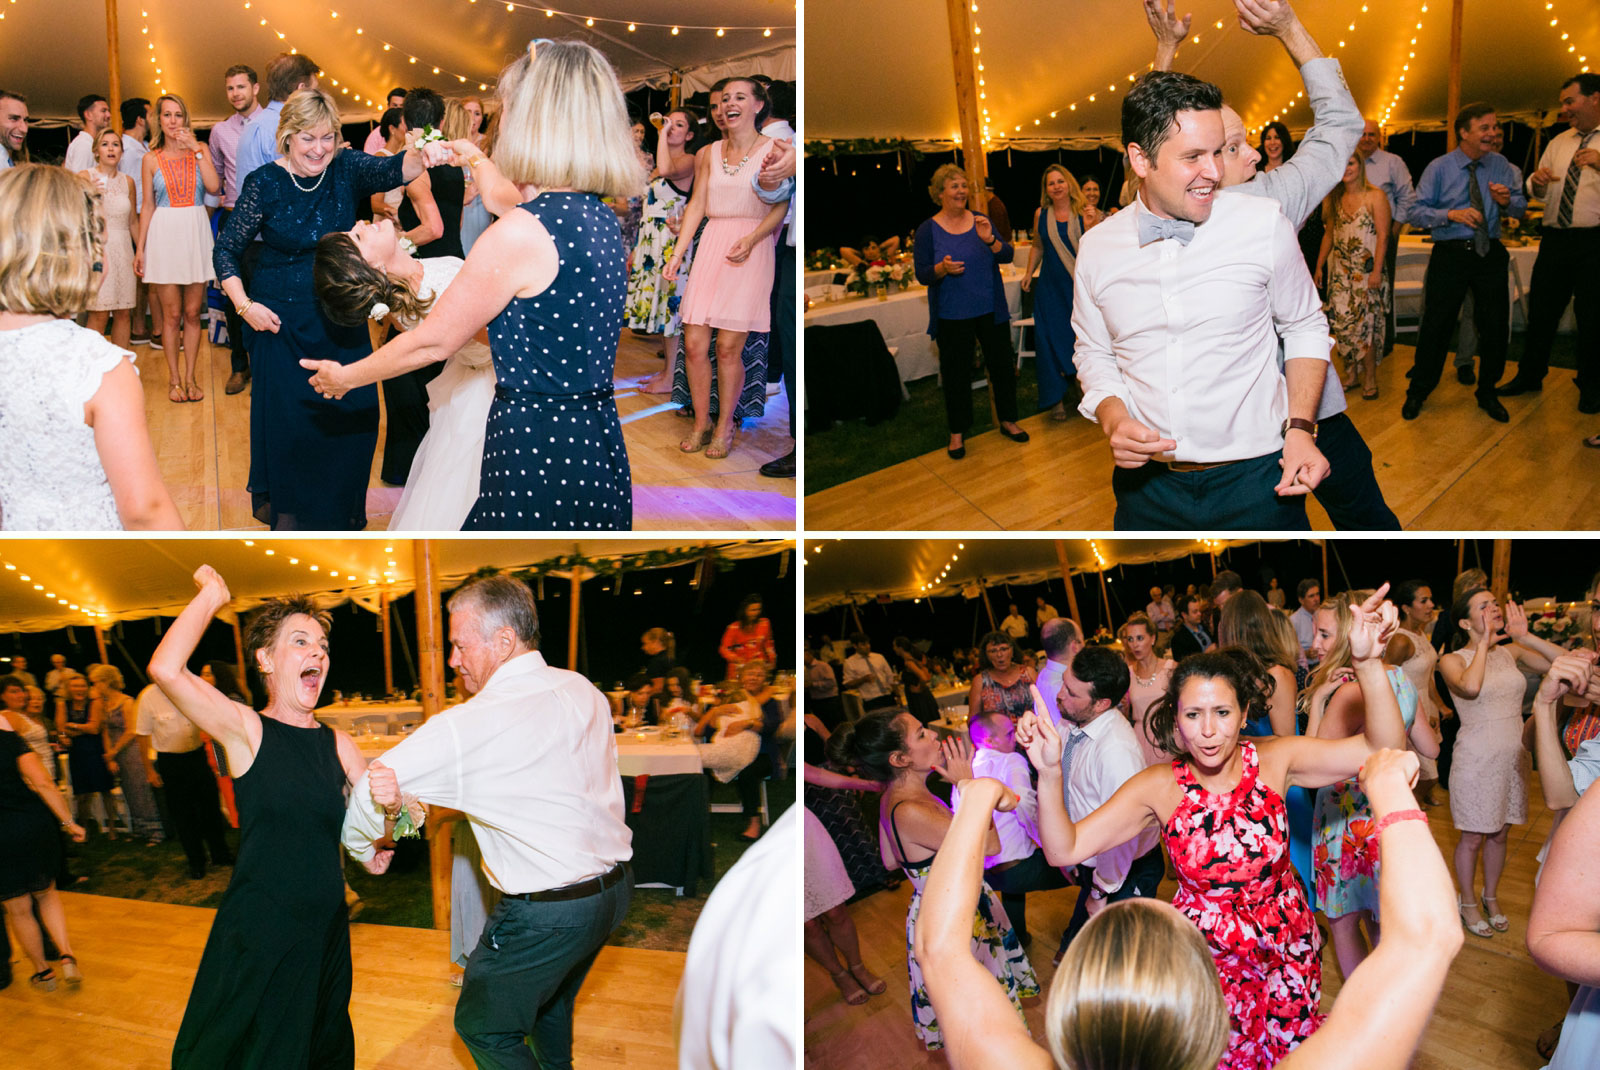 Wedding guests dancing and having fun on the dance floor at tented wedding reception at Bourne Farm.